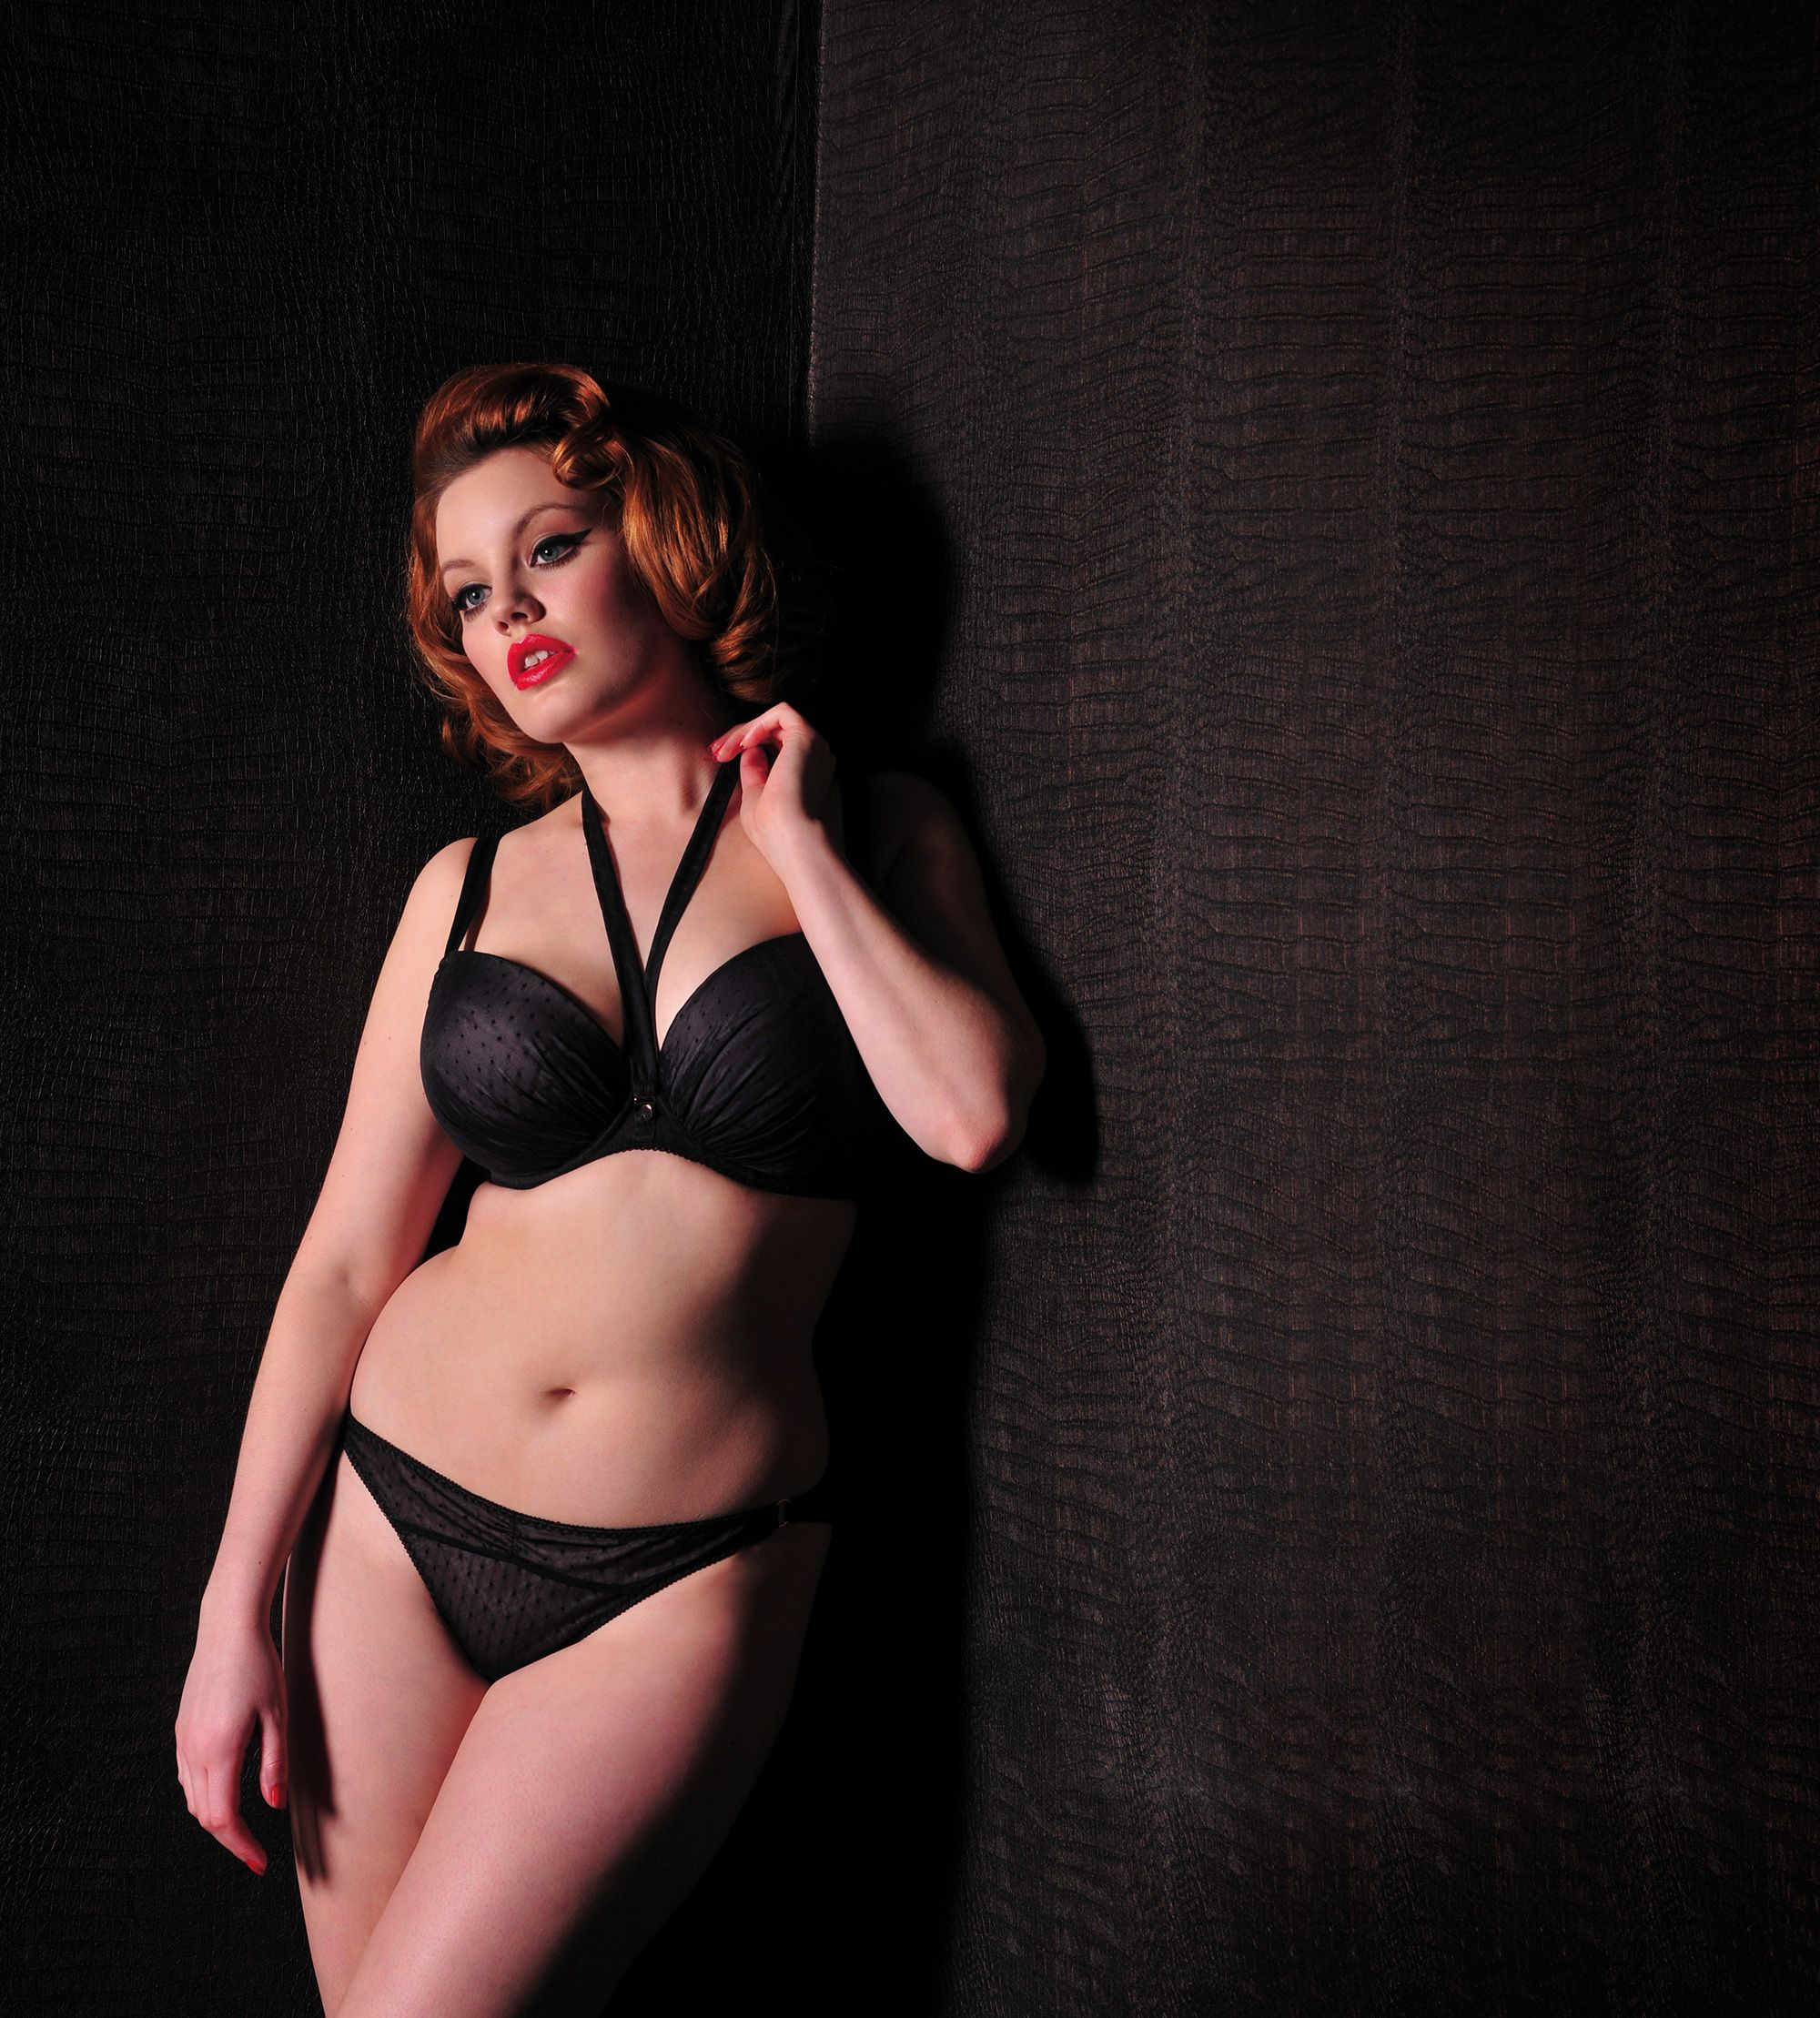 There s a new range of bras for big boobs and it s Fifty Shades of sexy.  Scantilly for Curvy Kate is a new boudoir-inspired lingerie ... 4bfef18b2